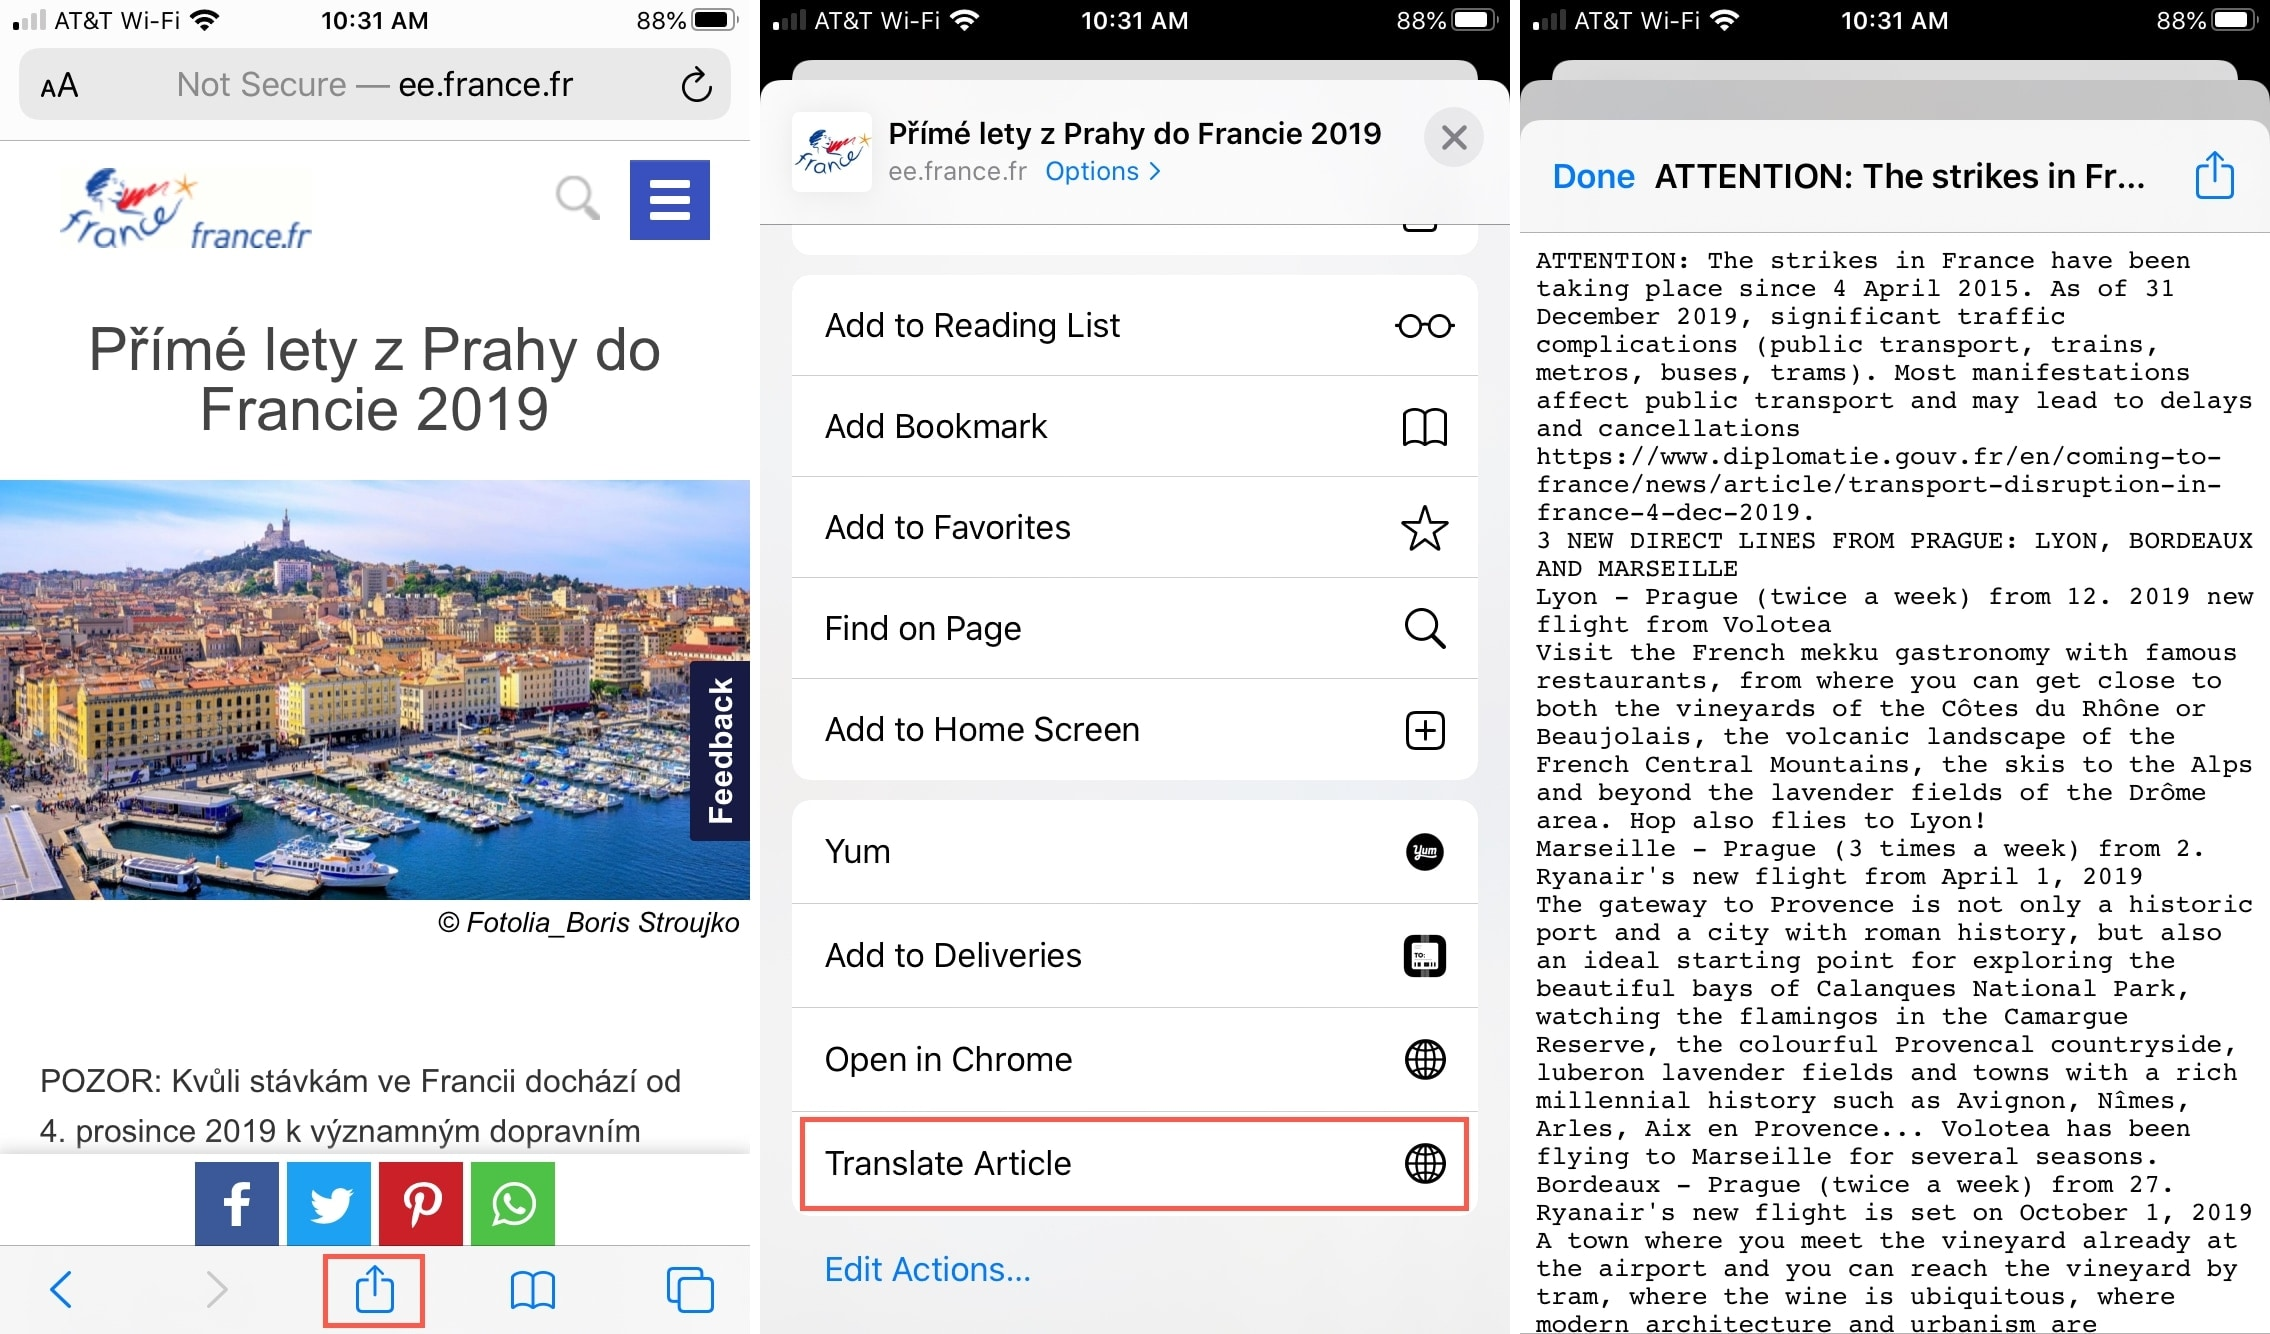 How to create a Shortcut to translate articles in Safari on iOS